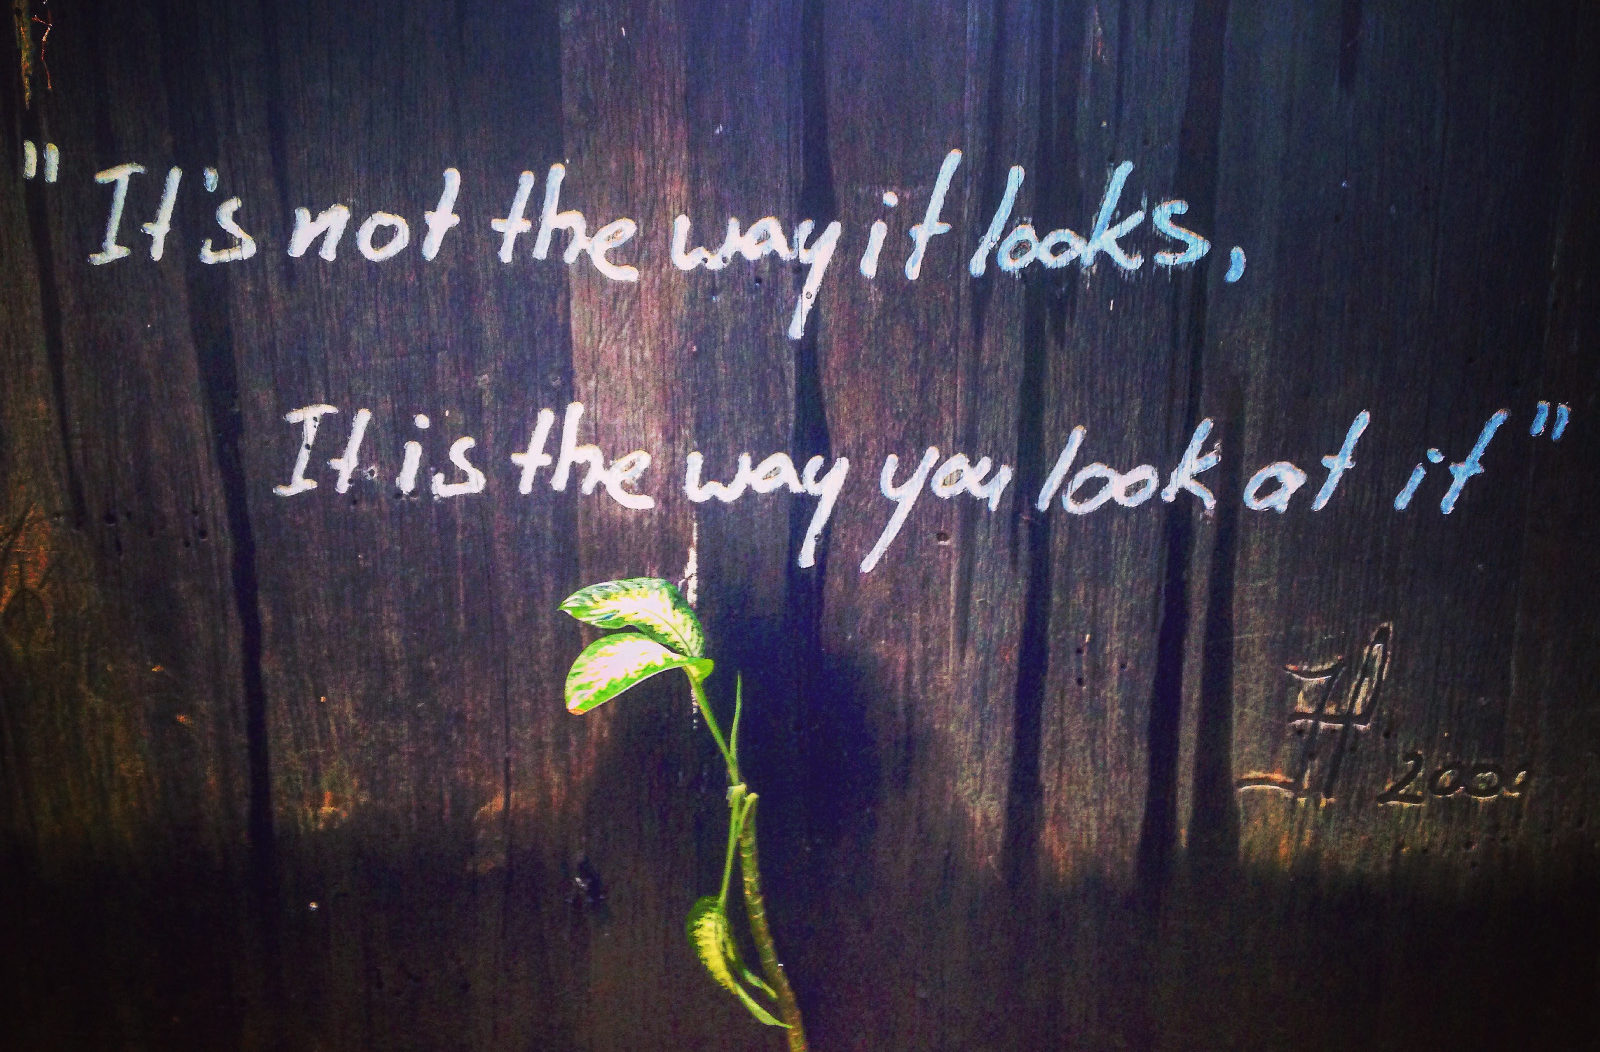 the way you look at it